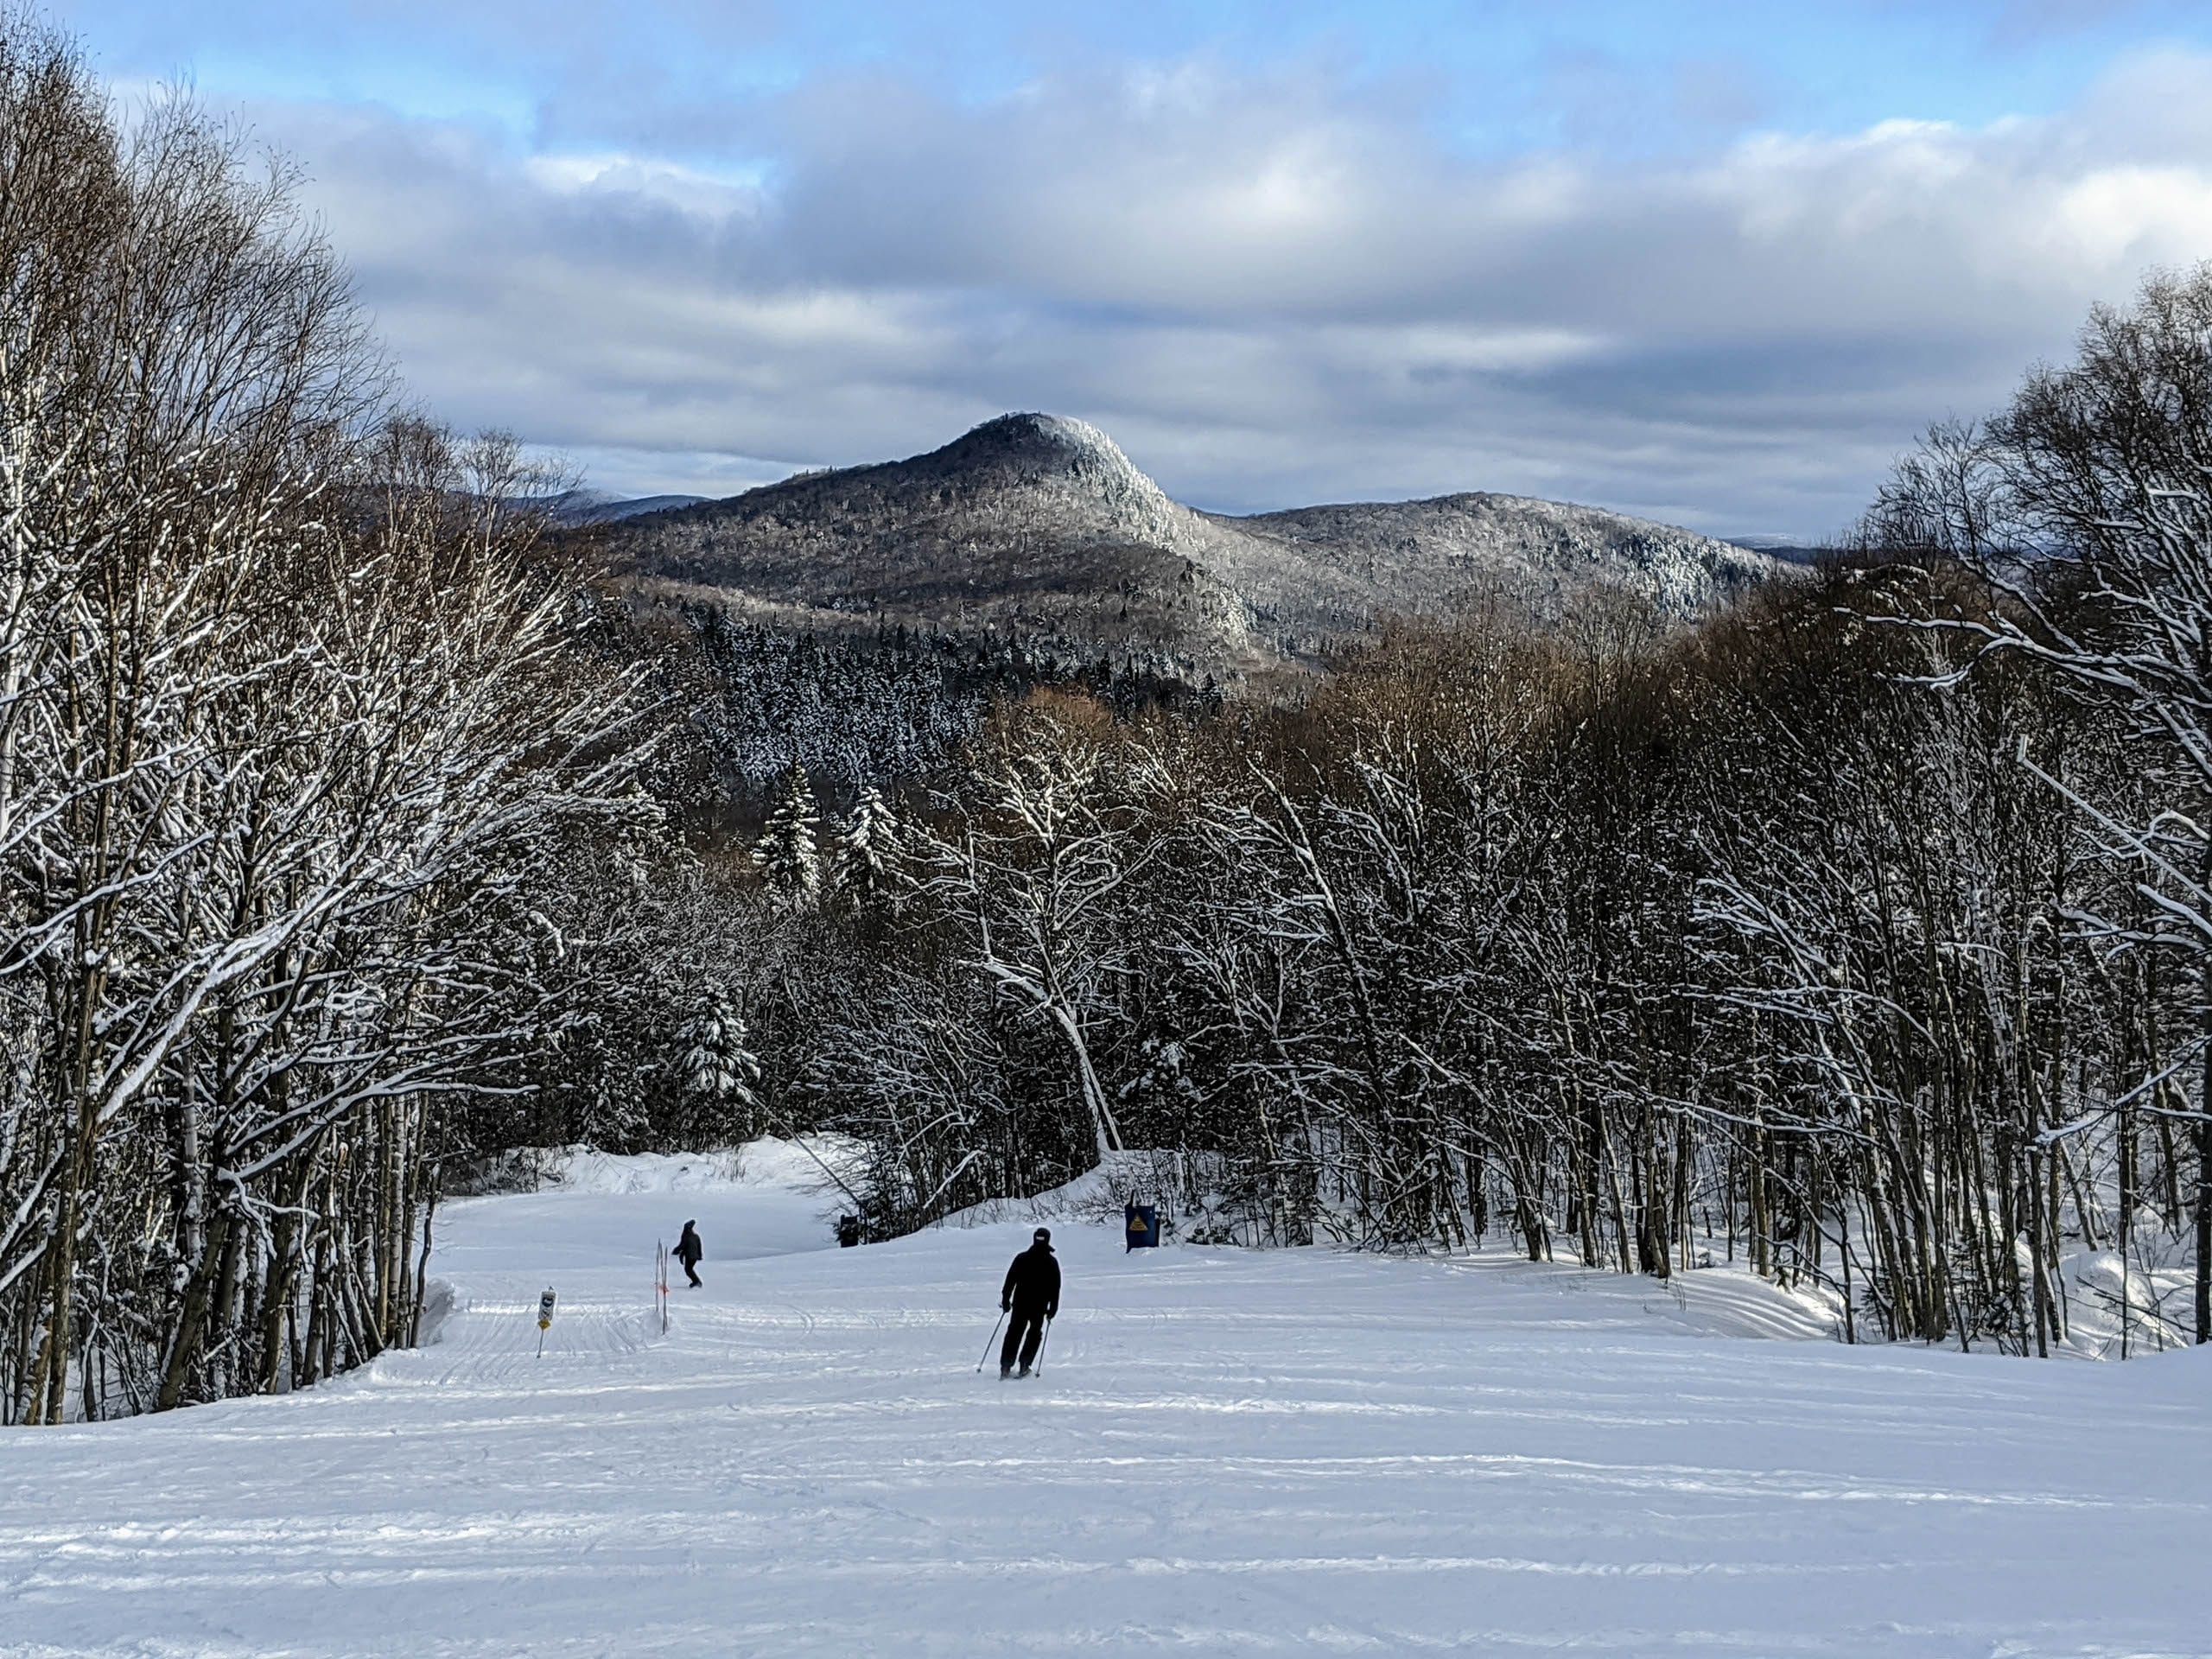 Skiers at Mont-Tremblant